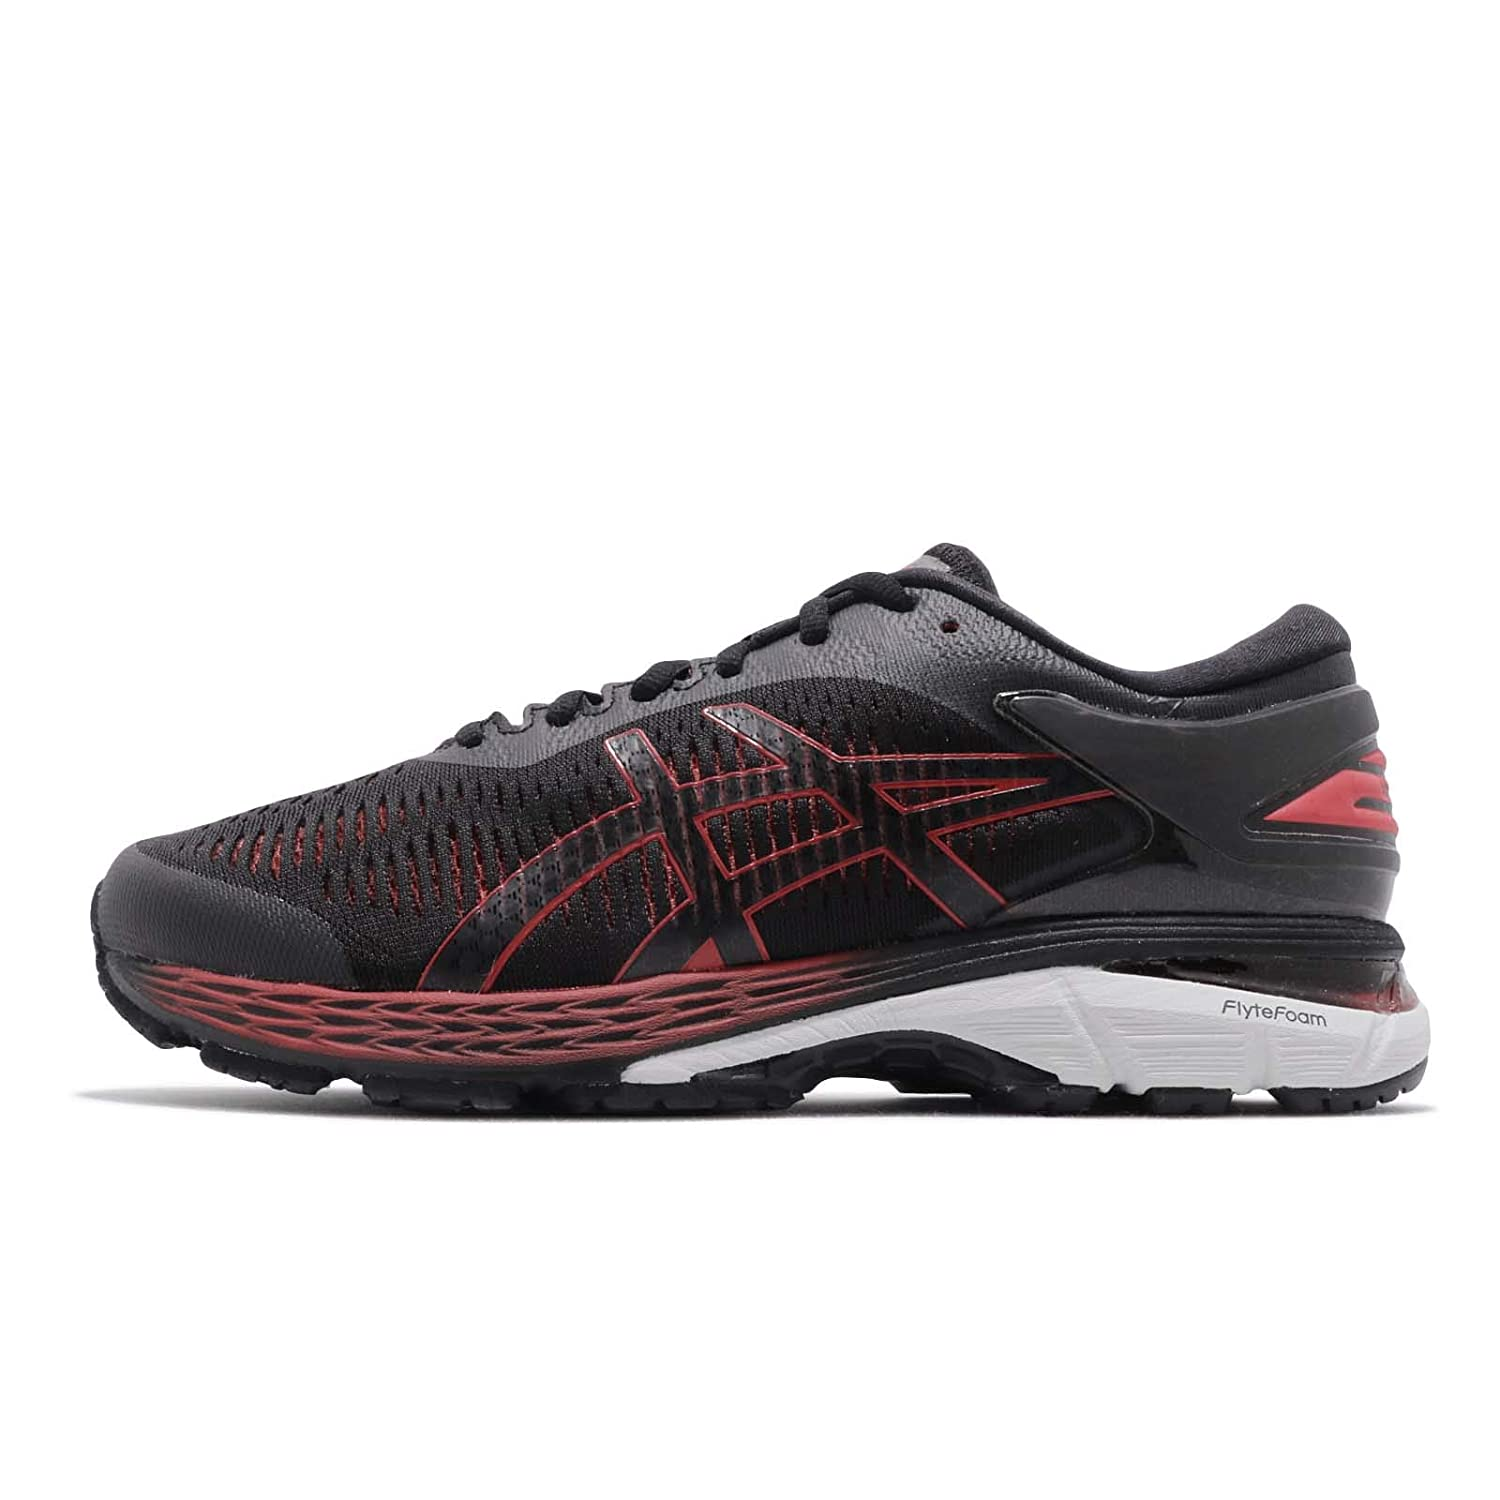 Amazon.com: Asics Gel-Kayano 25 [1011A029-004] 2E Wide Men Running ...